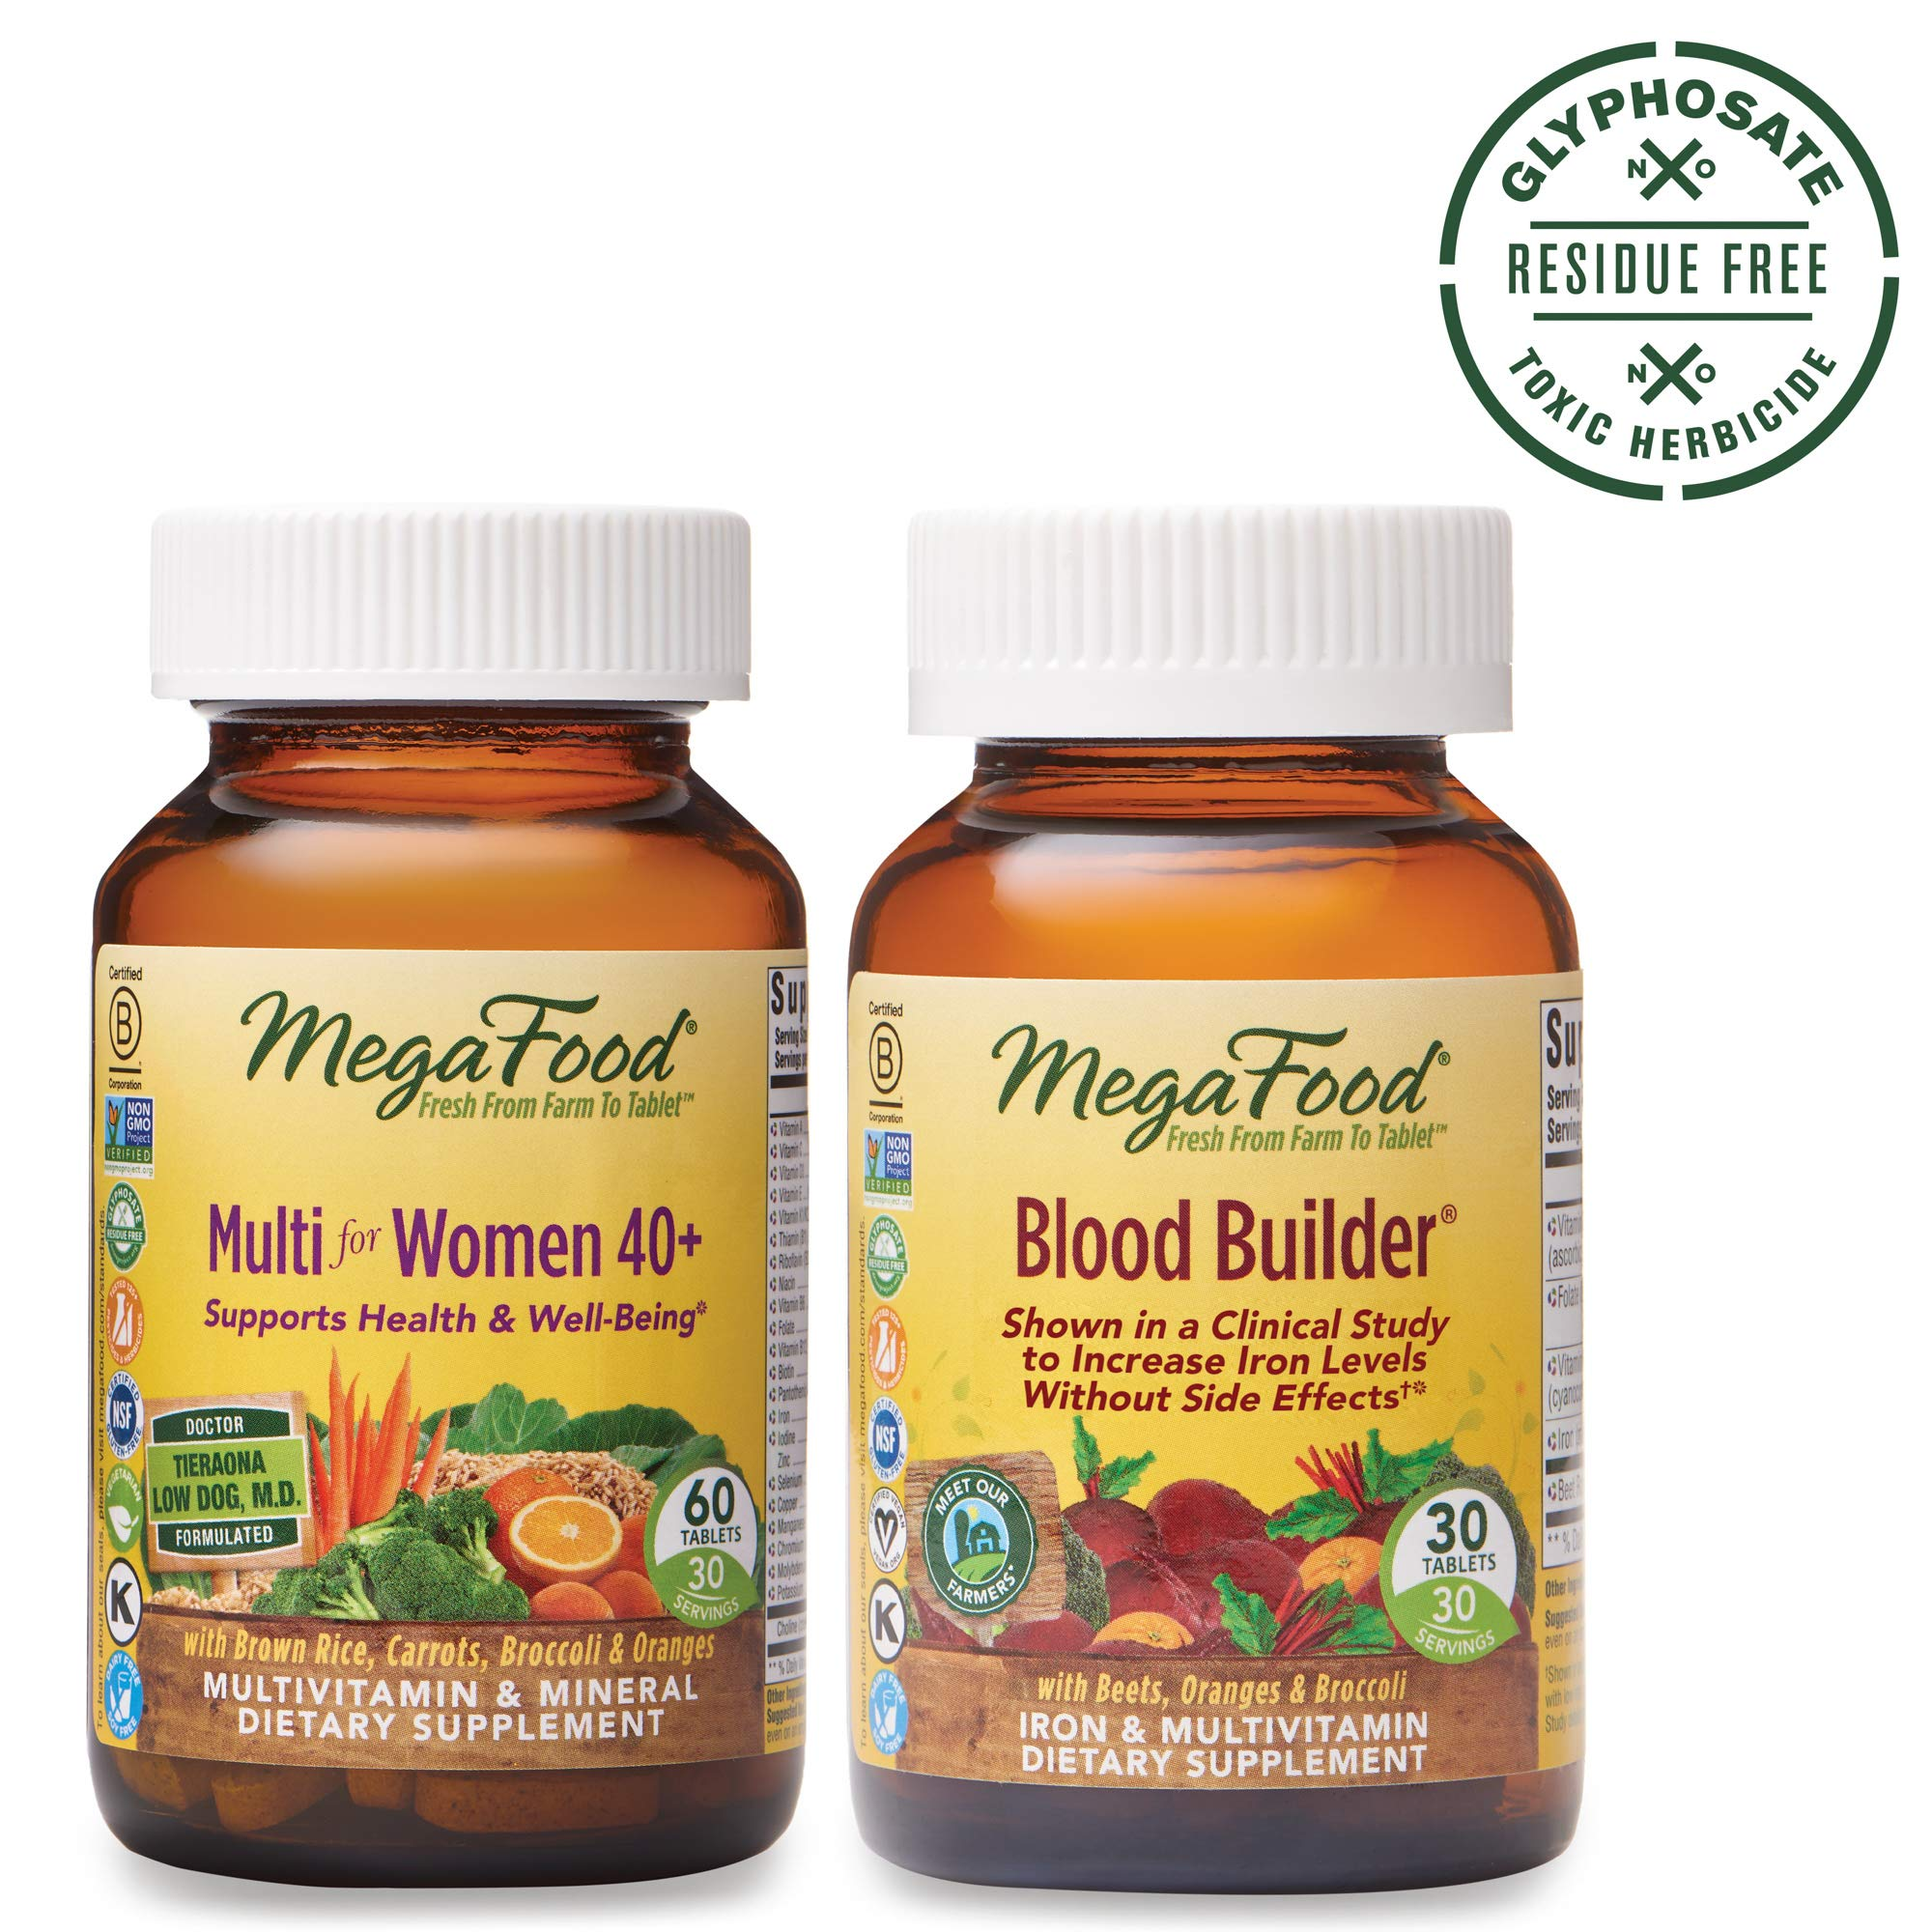 MegaFood, Multi for Women 40+ and Blood Builder Supplement Bundle, Supports Healthy Iron Levels and Well-Being (60 & 30 Tablets) by MegaFood